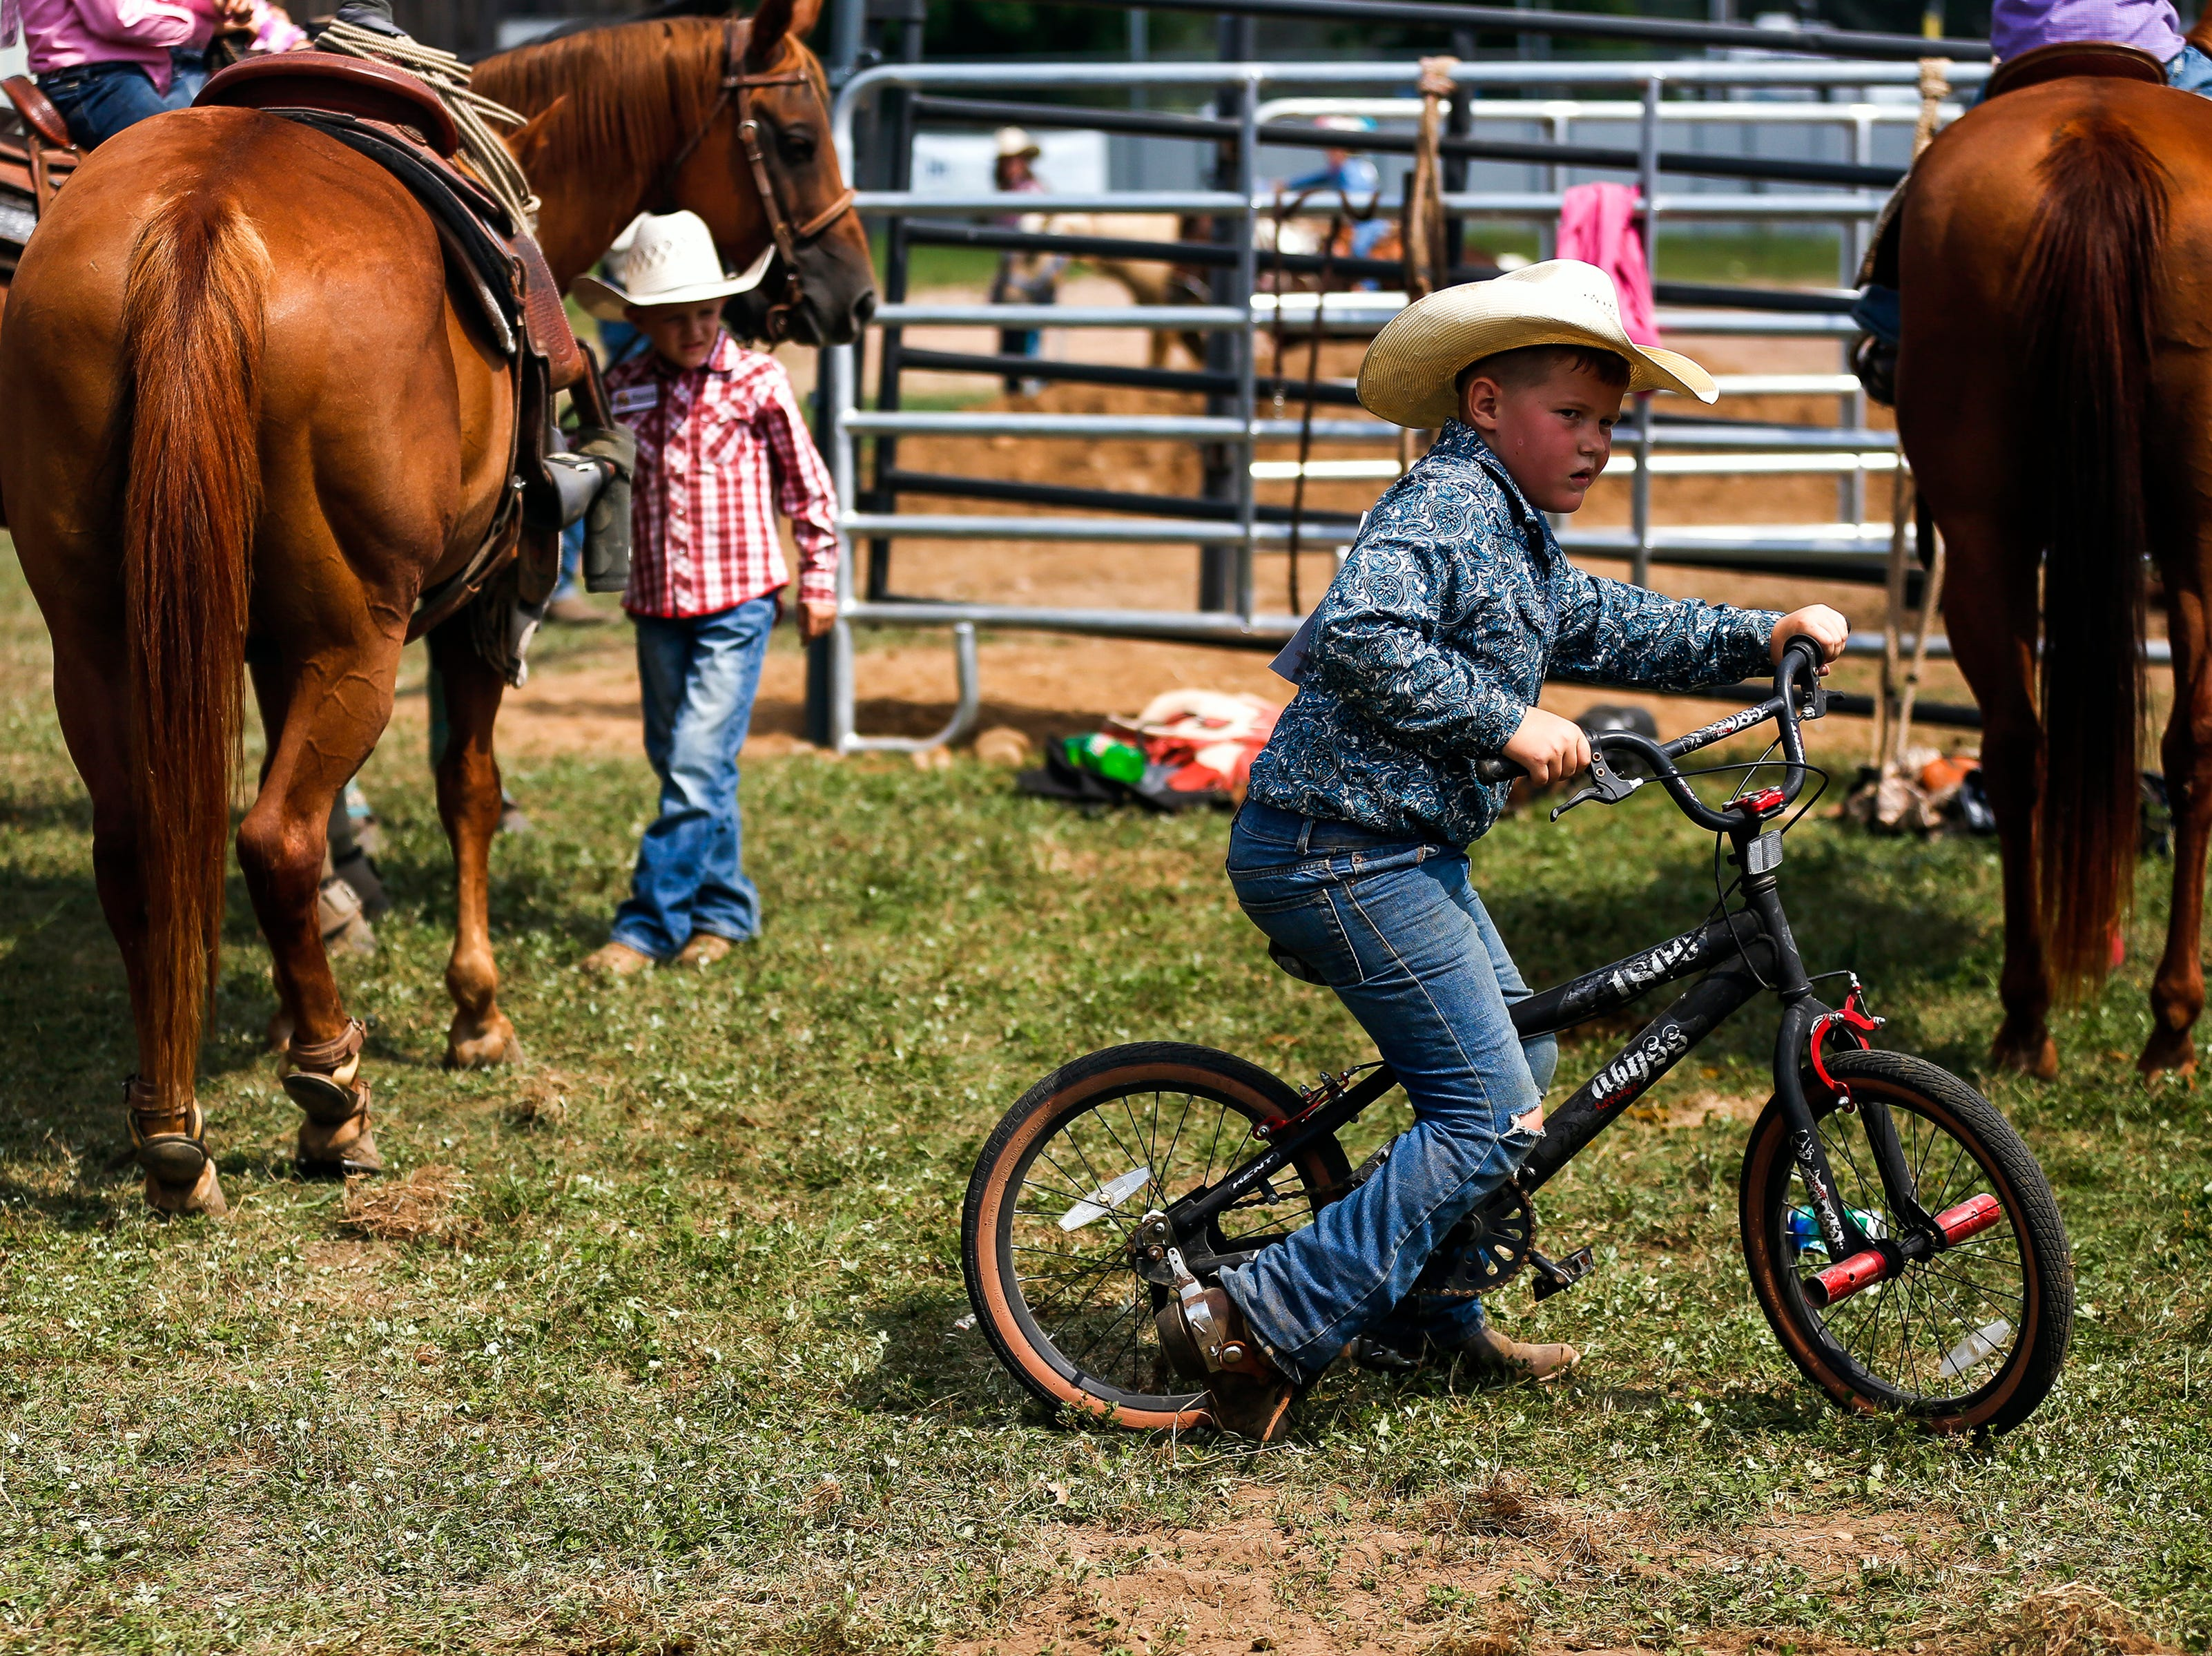 A boy rides a bike through the fairgrounds during the Amherst Little Britches Wisconsin Rodeo in Amherst, Wis., August 17, 2018.